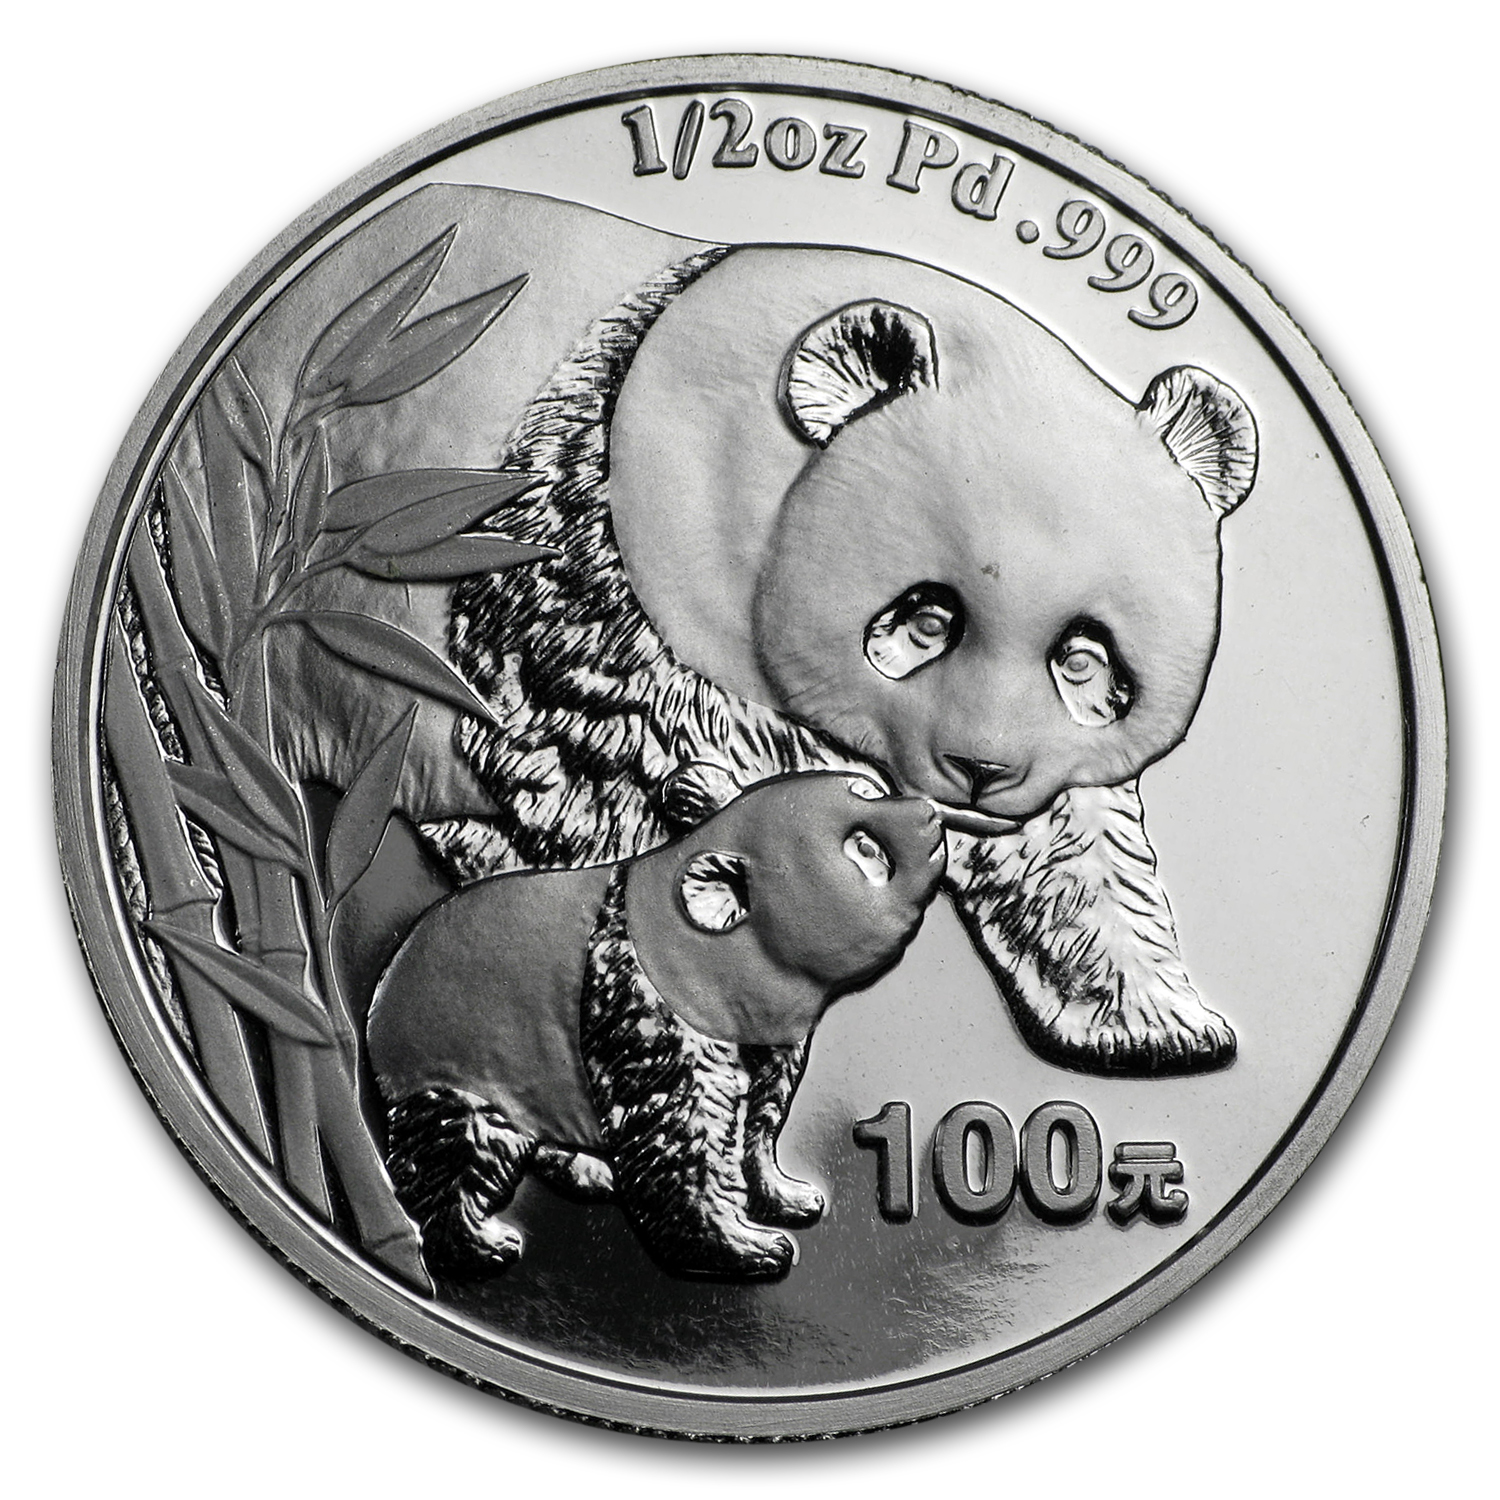 2004 China 1/2 oz Proof Palladium Panda (w/Box & COA)